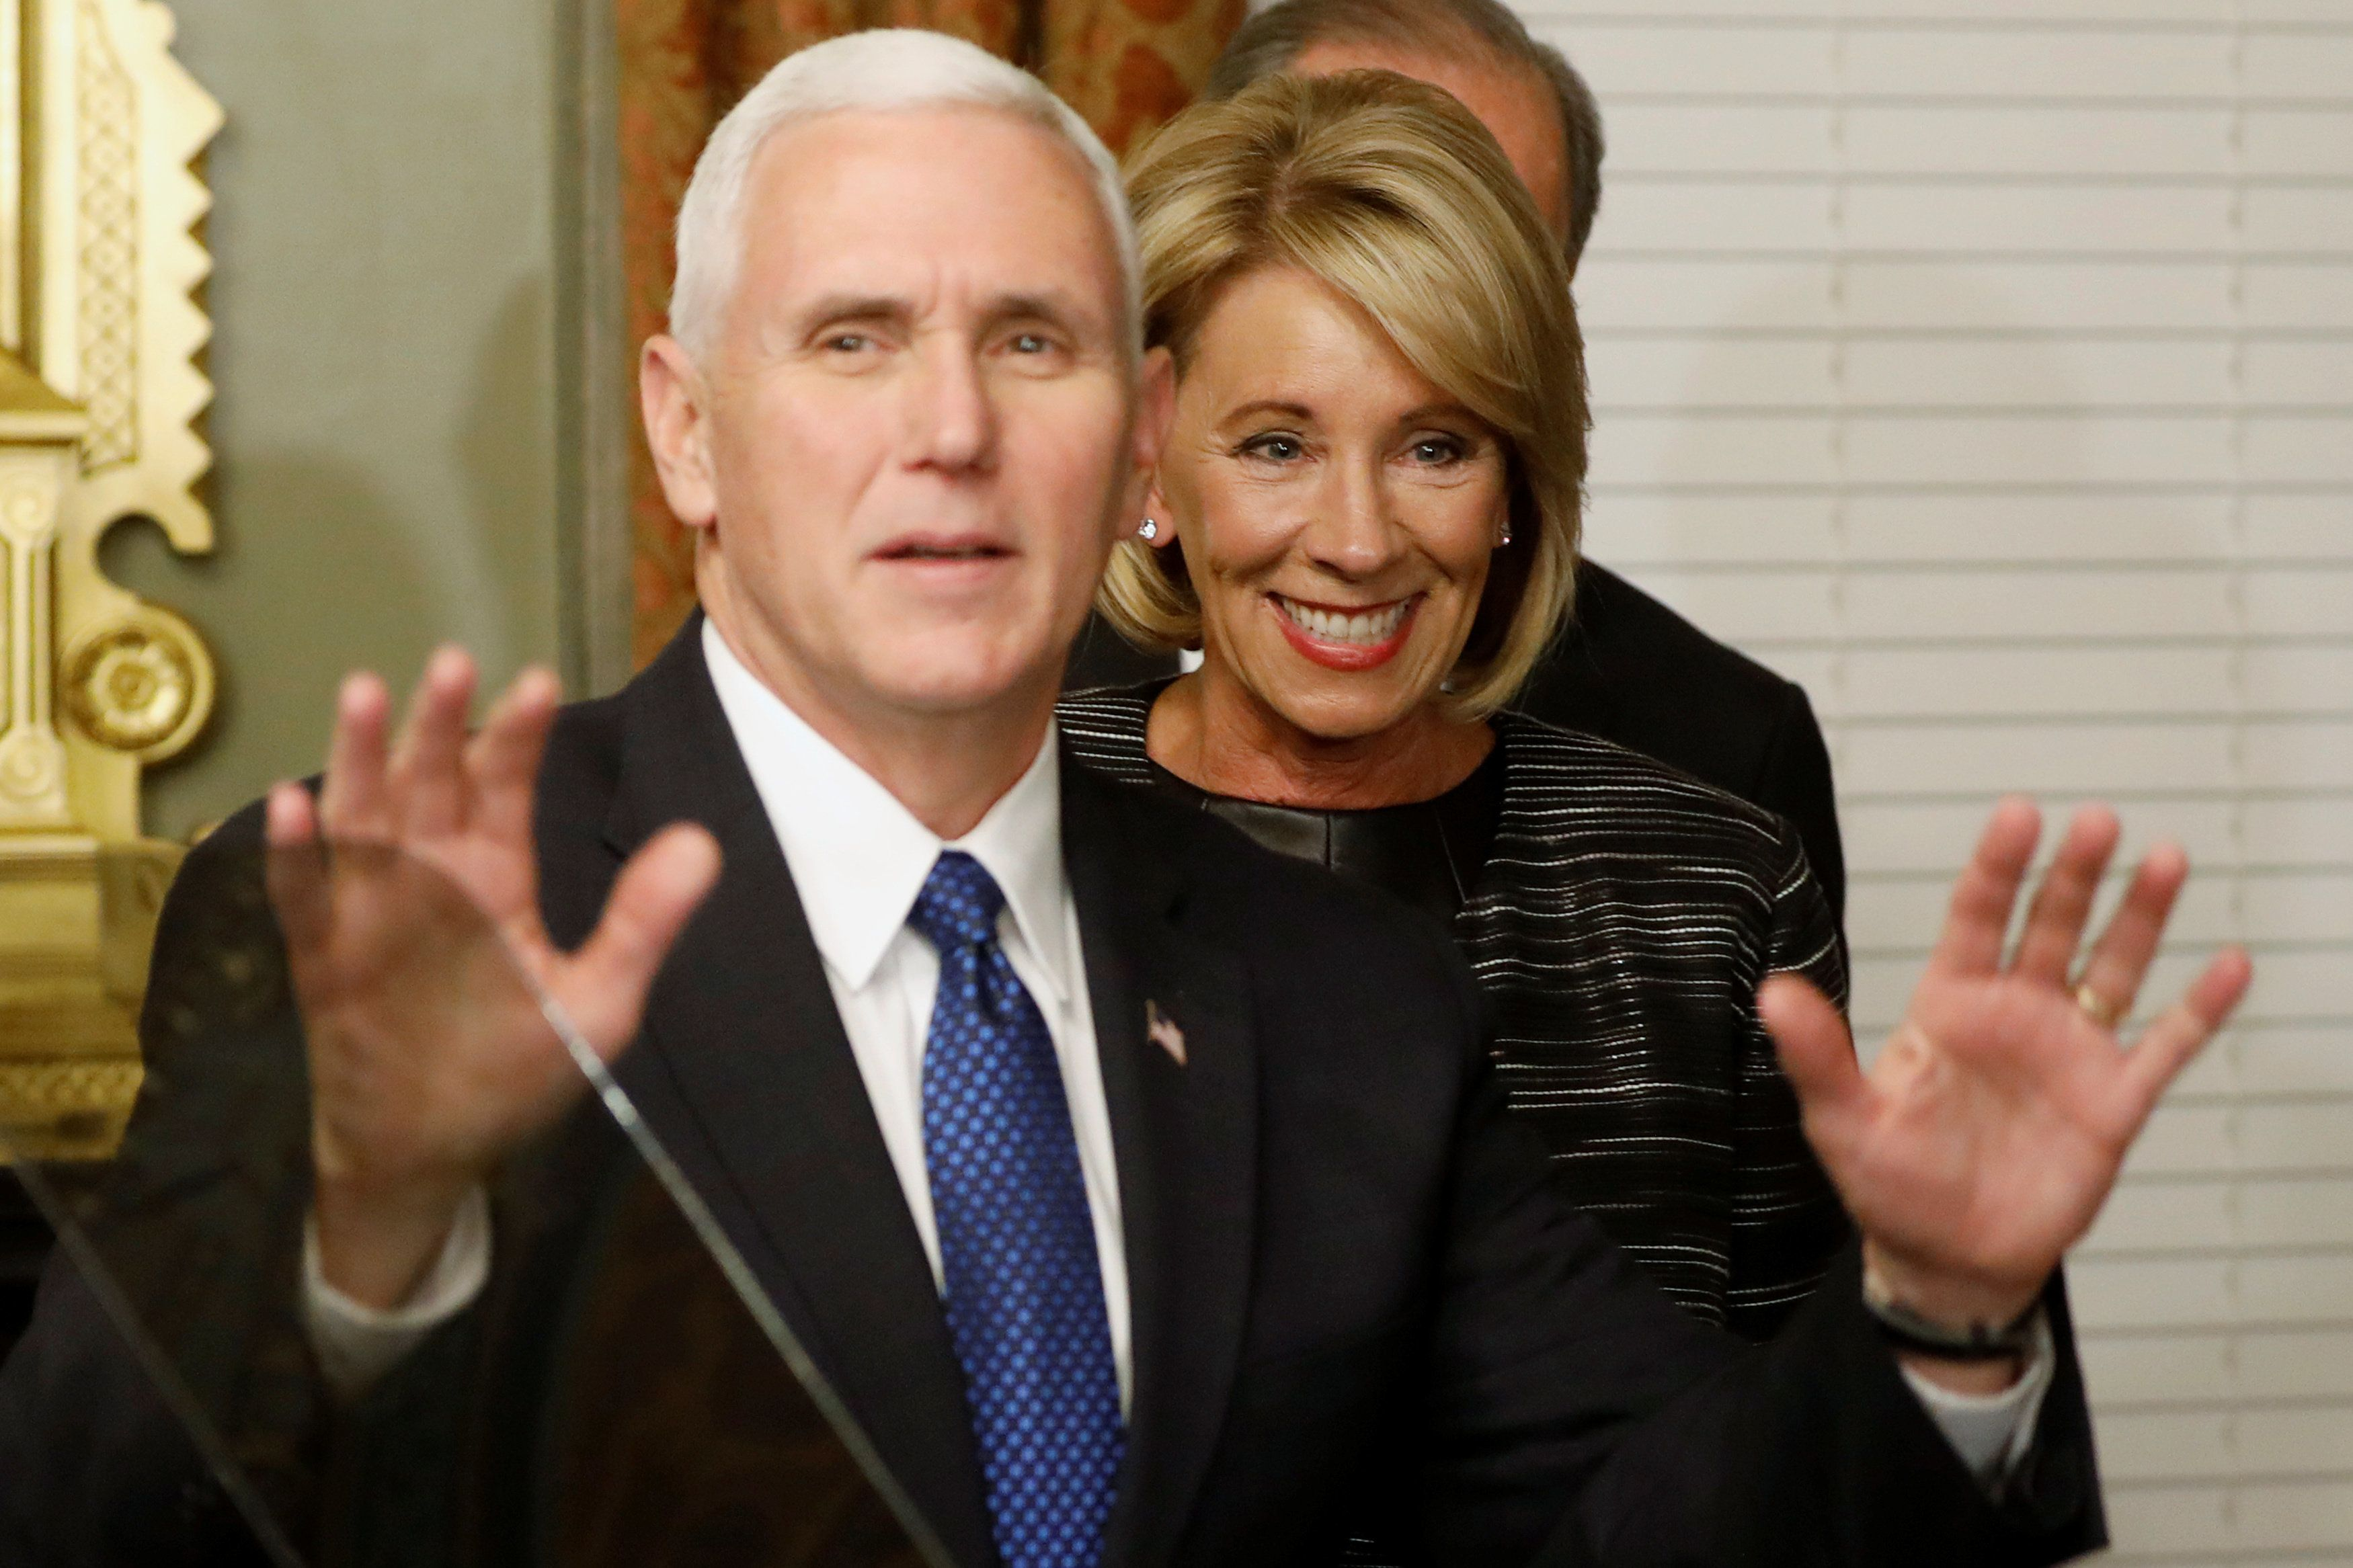 U.S. Vice President Mike Pence (L) dismisses reporters after swearing in Education Secretary Betsy DeVos (C) at the Eisenhower Executive Office Building at the White House in Washington, U.S. February 7, 2017.  REUTERS/Jonathan Ernst